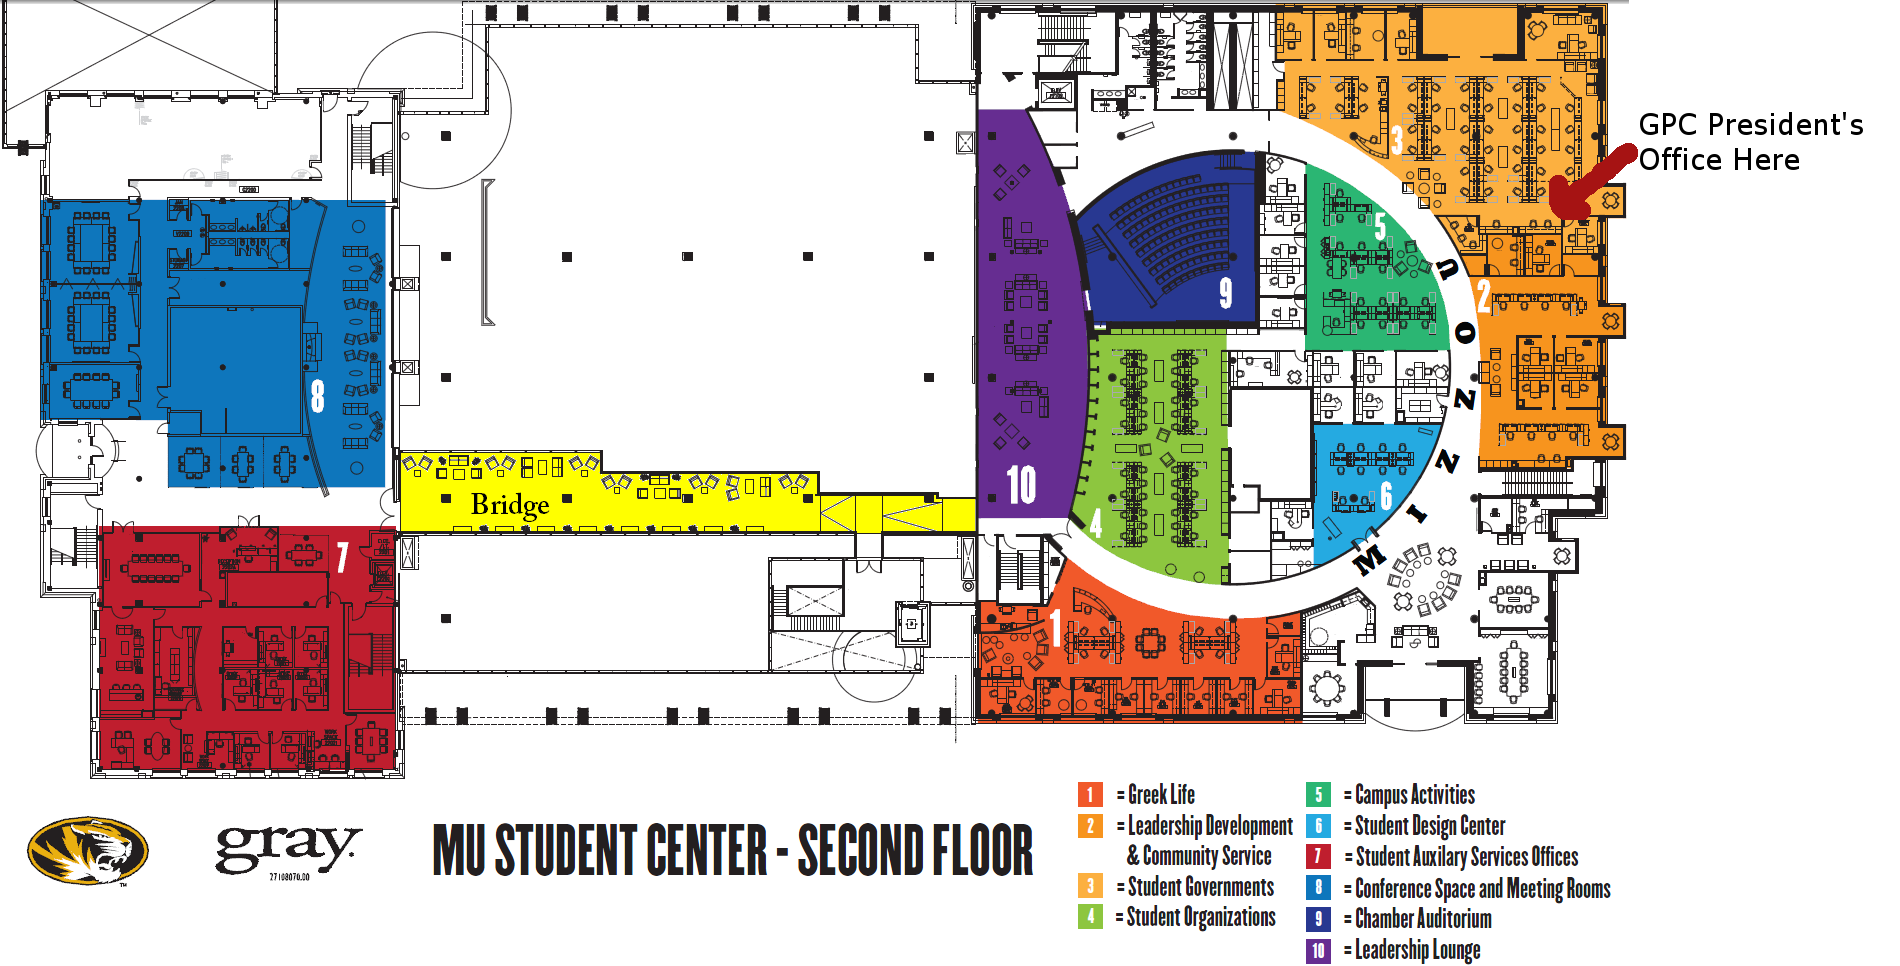 mu_student_center_second_floor-with-arrow